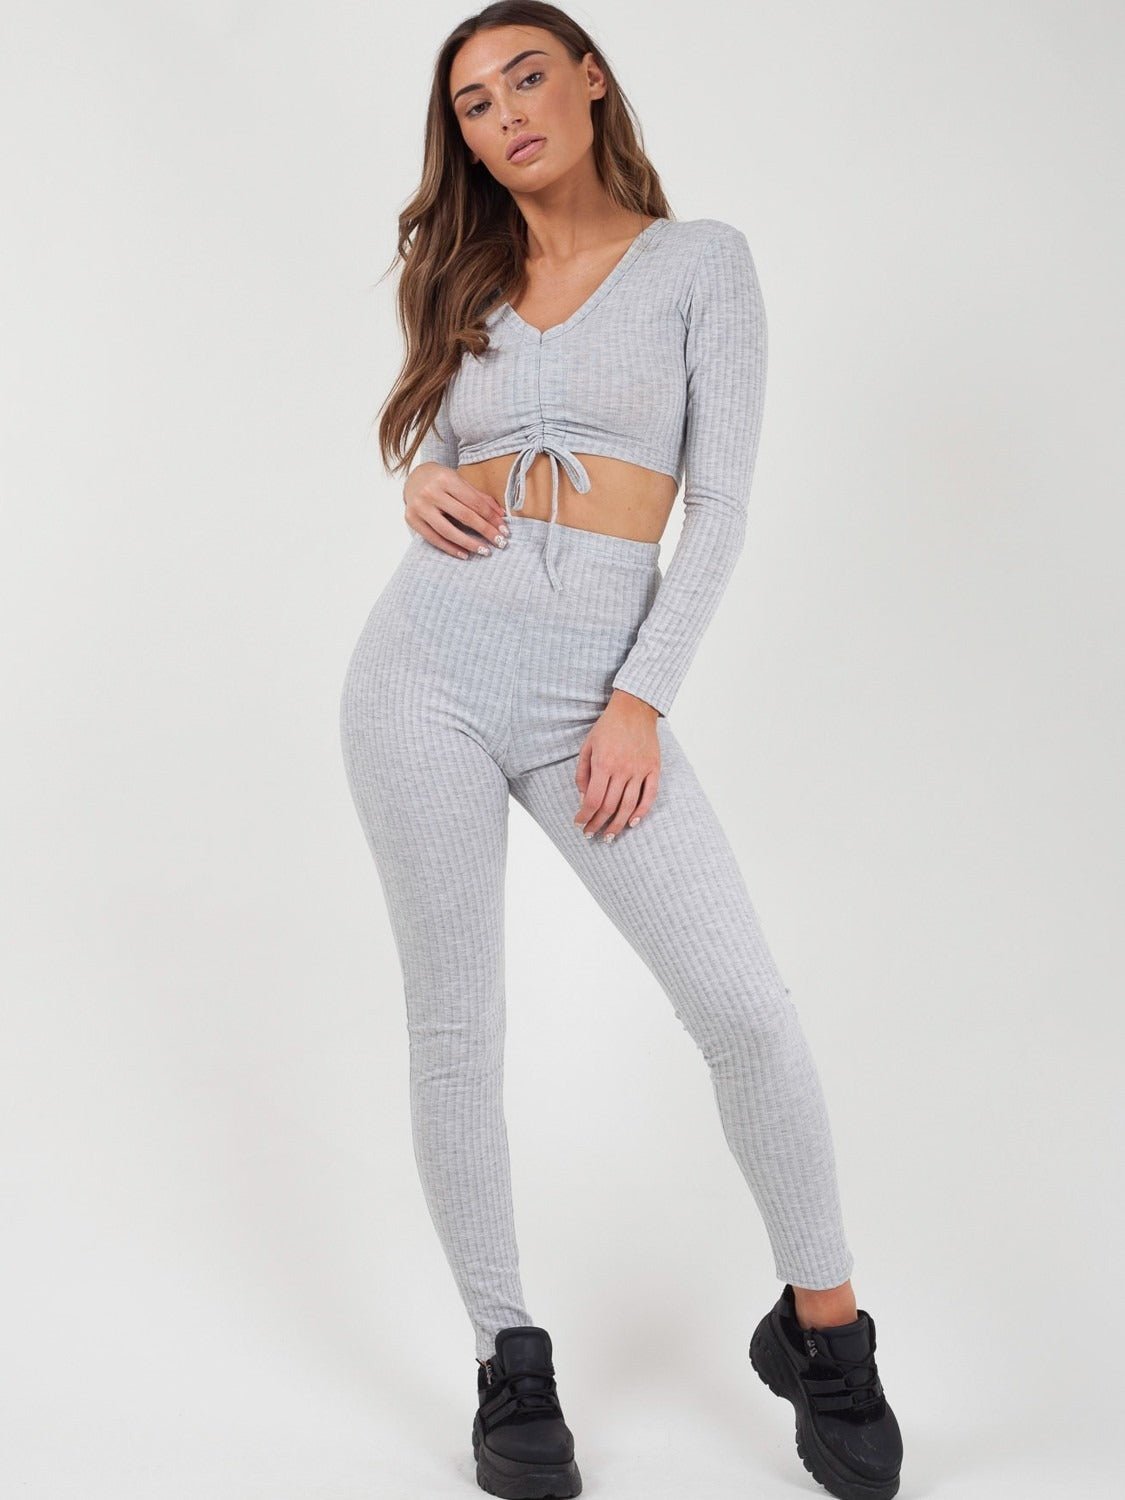 Grey Ruched Crop Top & Legging Ribbed Co-ord Set - Catherine